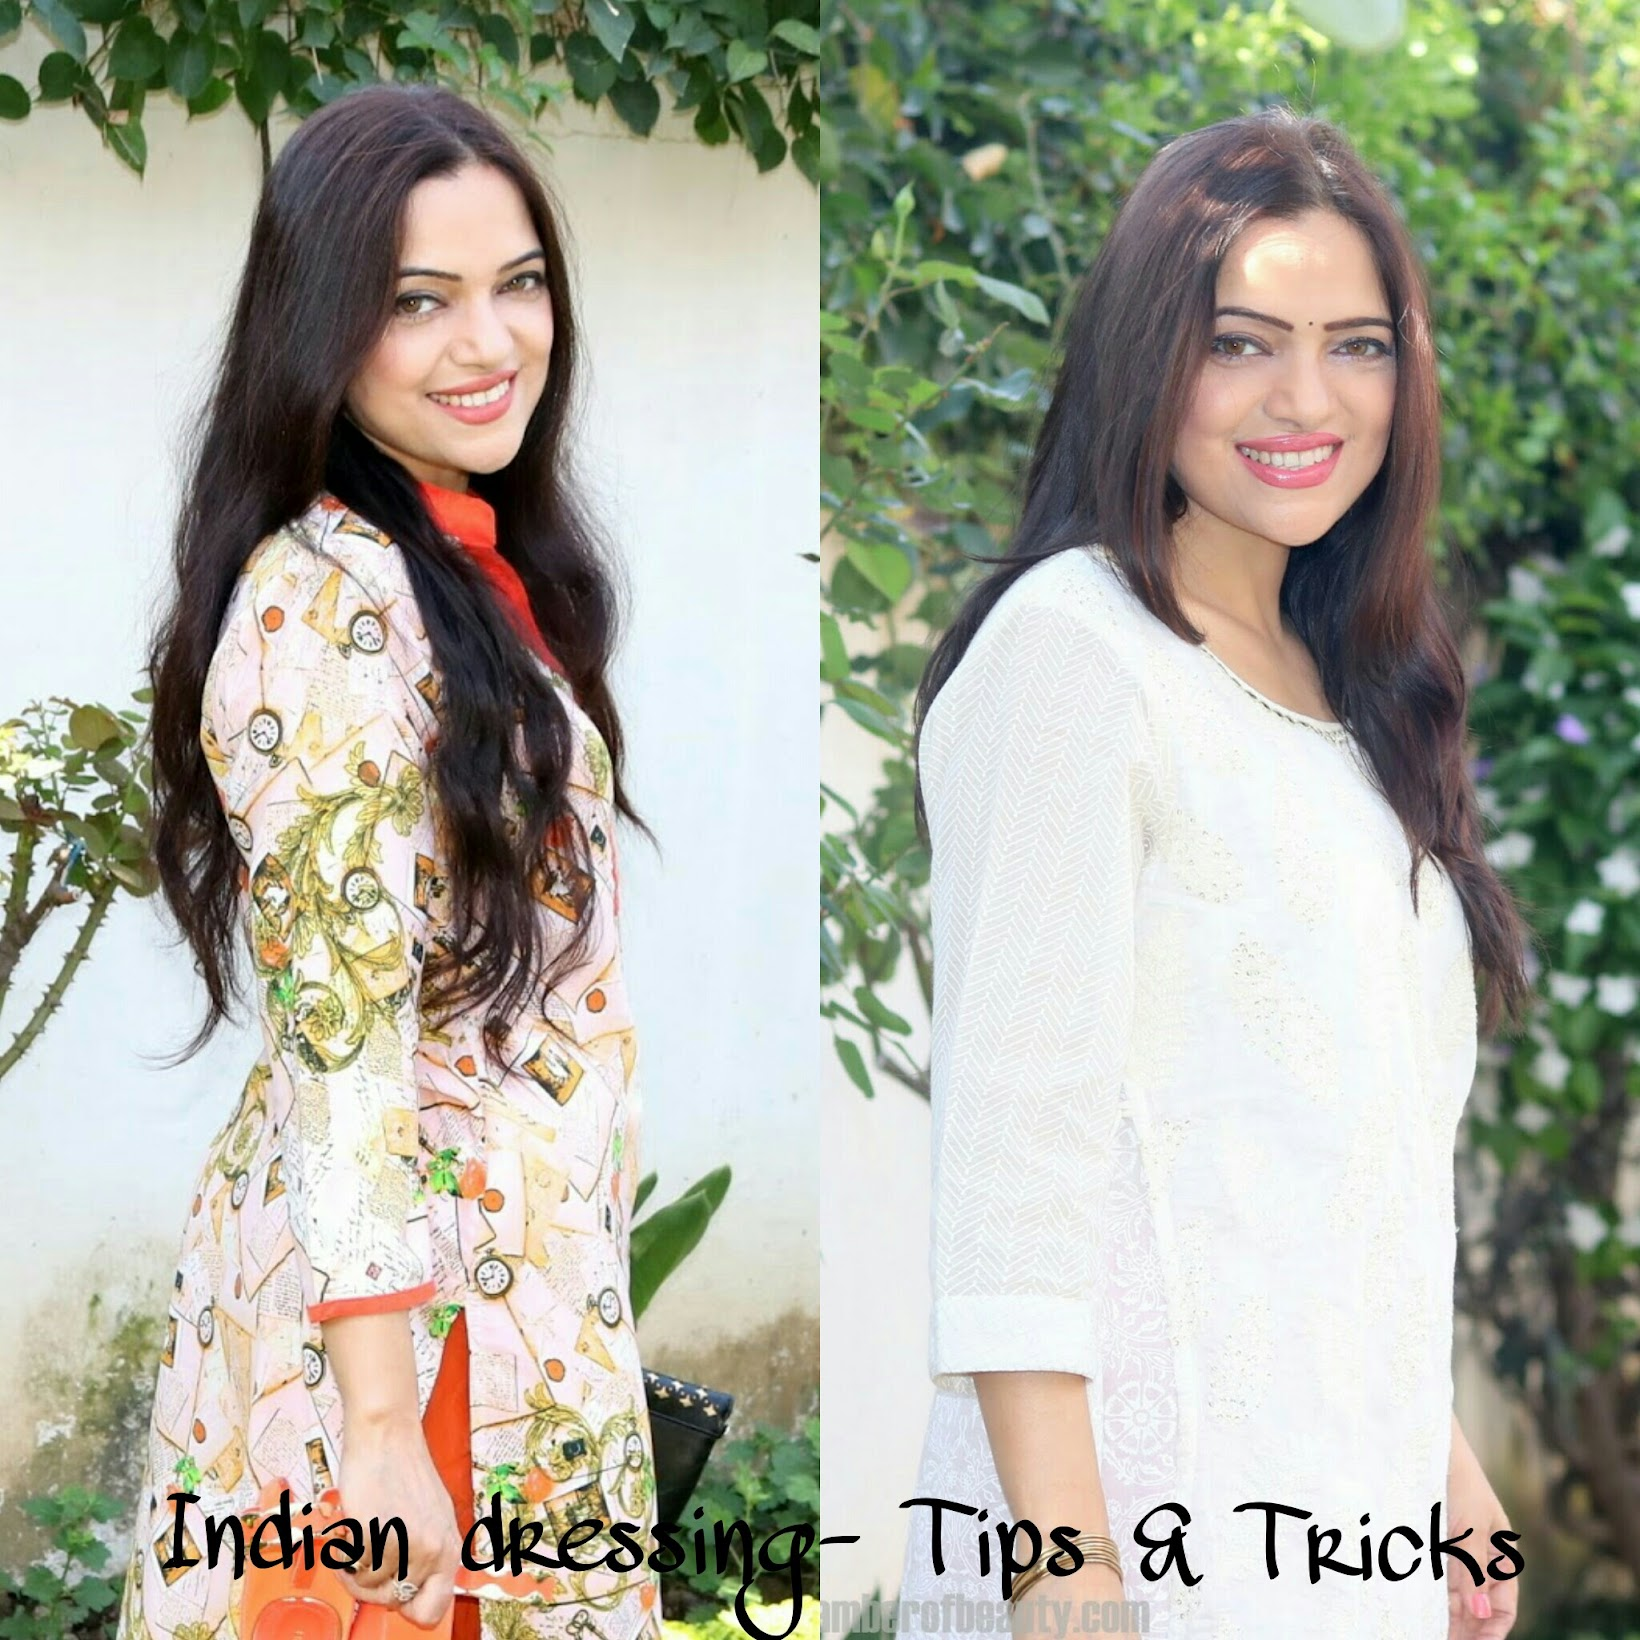 How to look your best in Indian outfits | Indian fashion blogger tips and suggestions